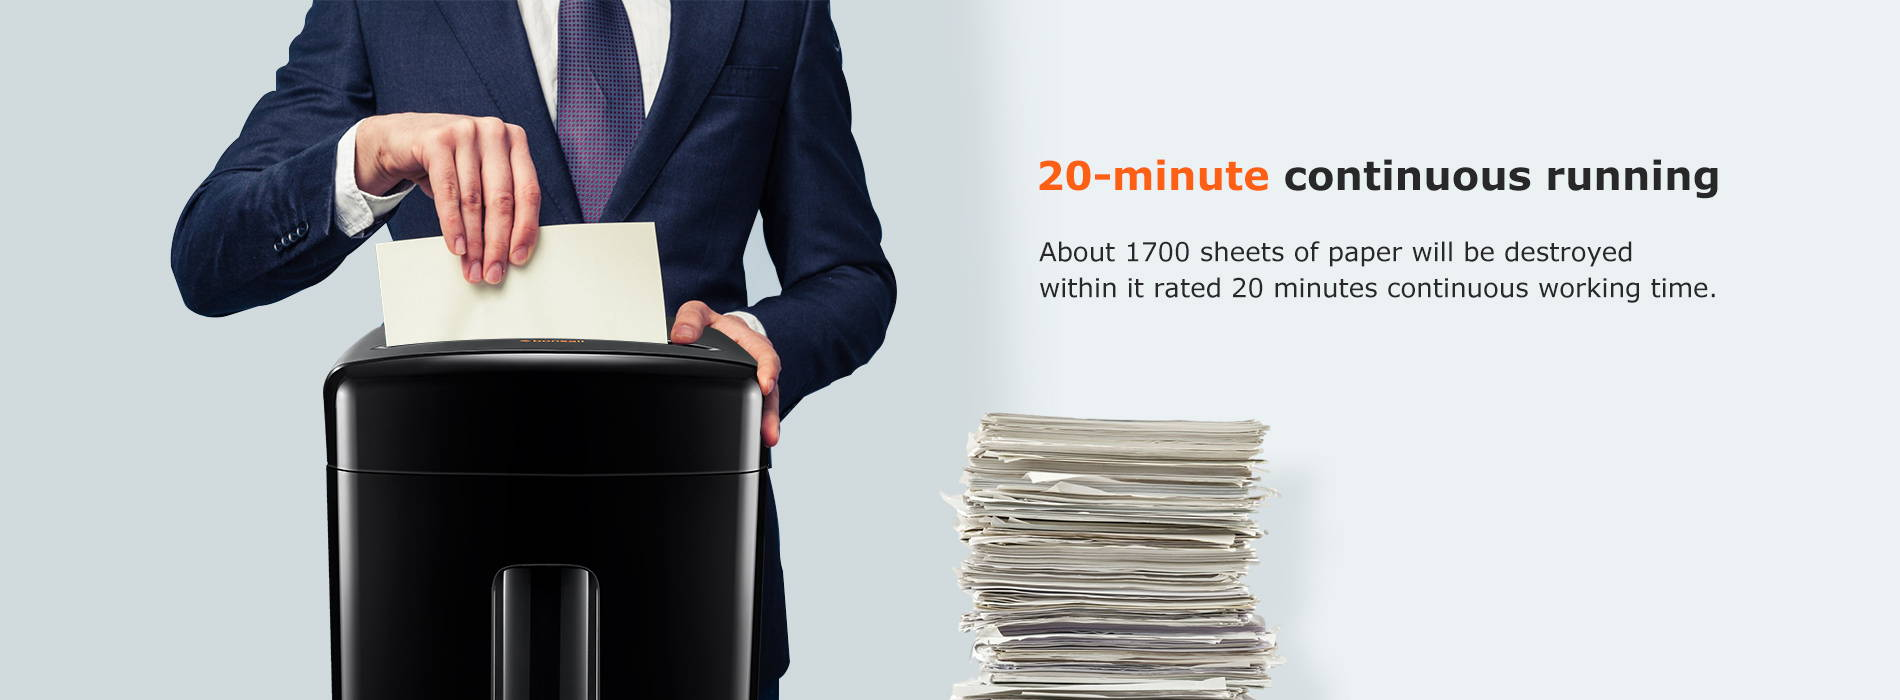 20-minute continuous running About 1700 sheets of paper will be destroyed within it rated 20 minutes continuous working time.